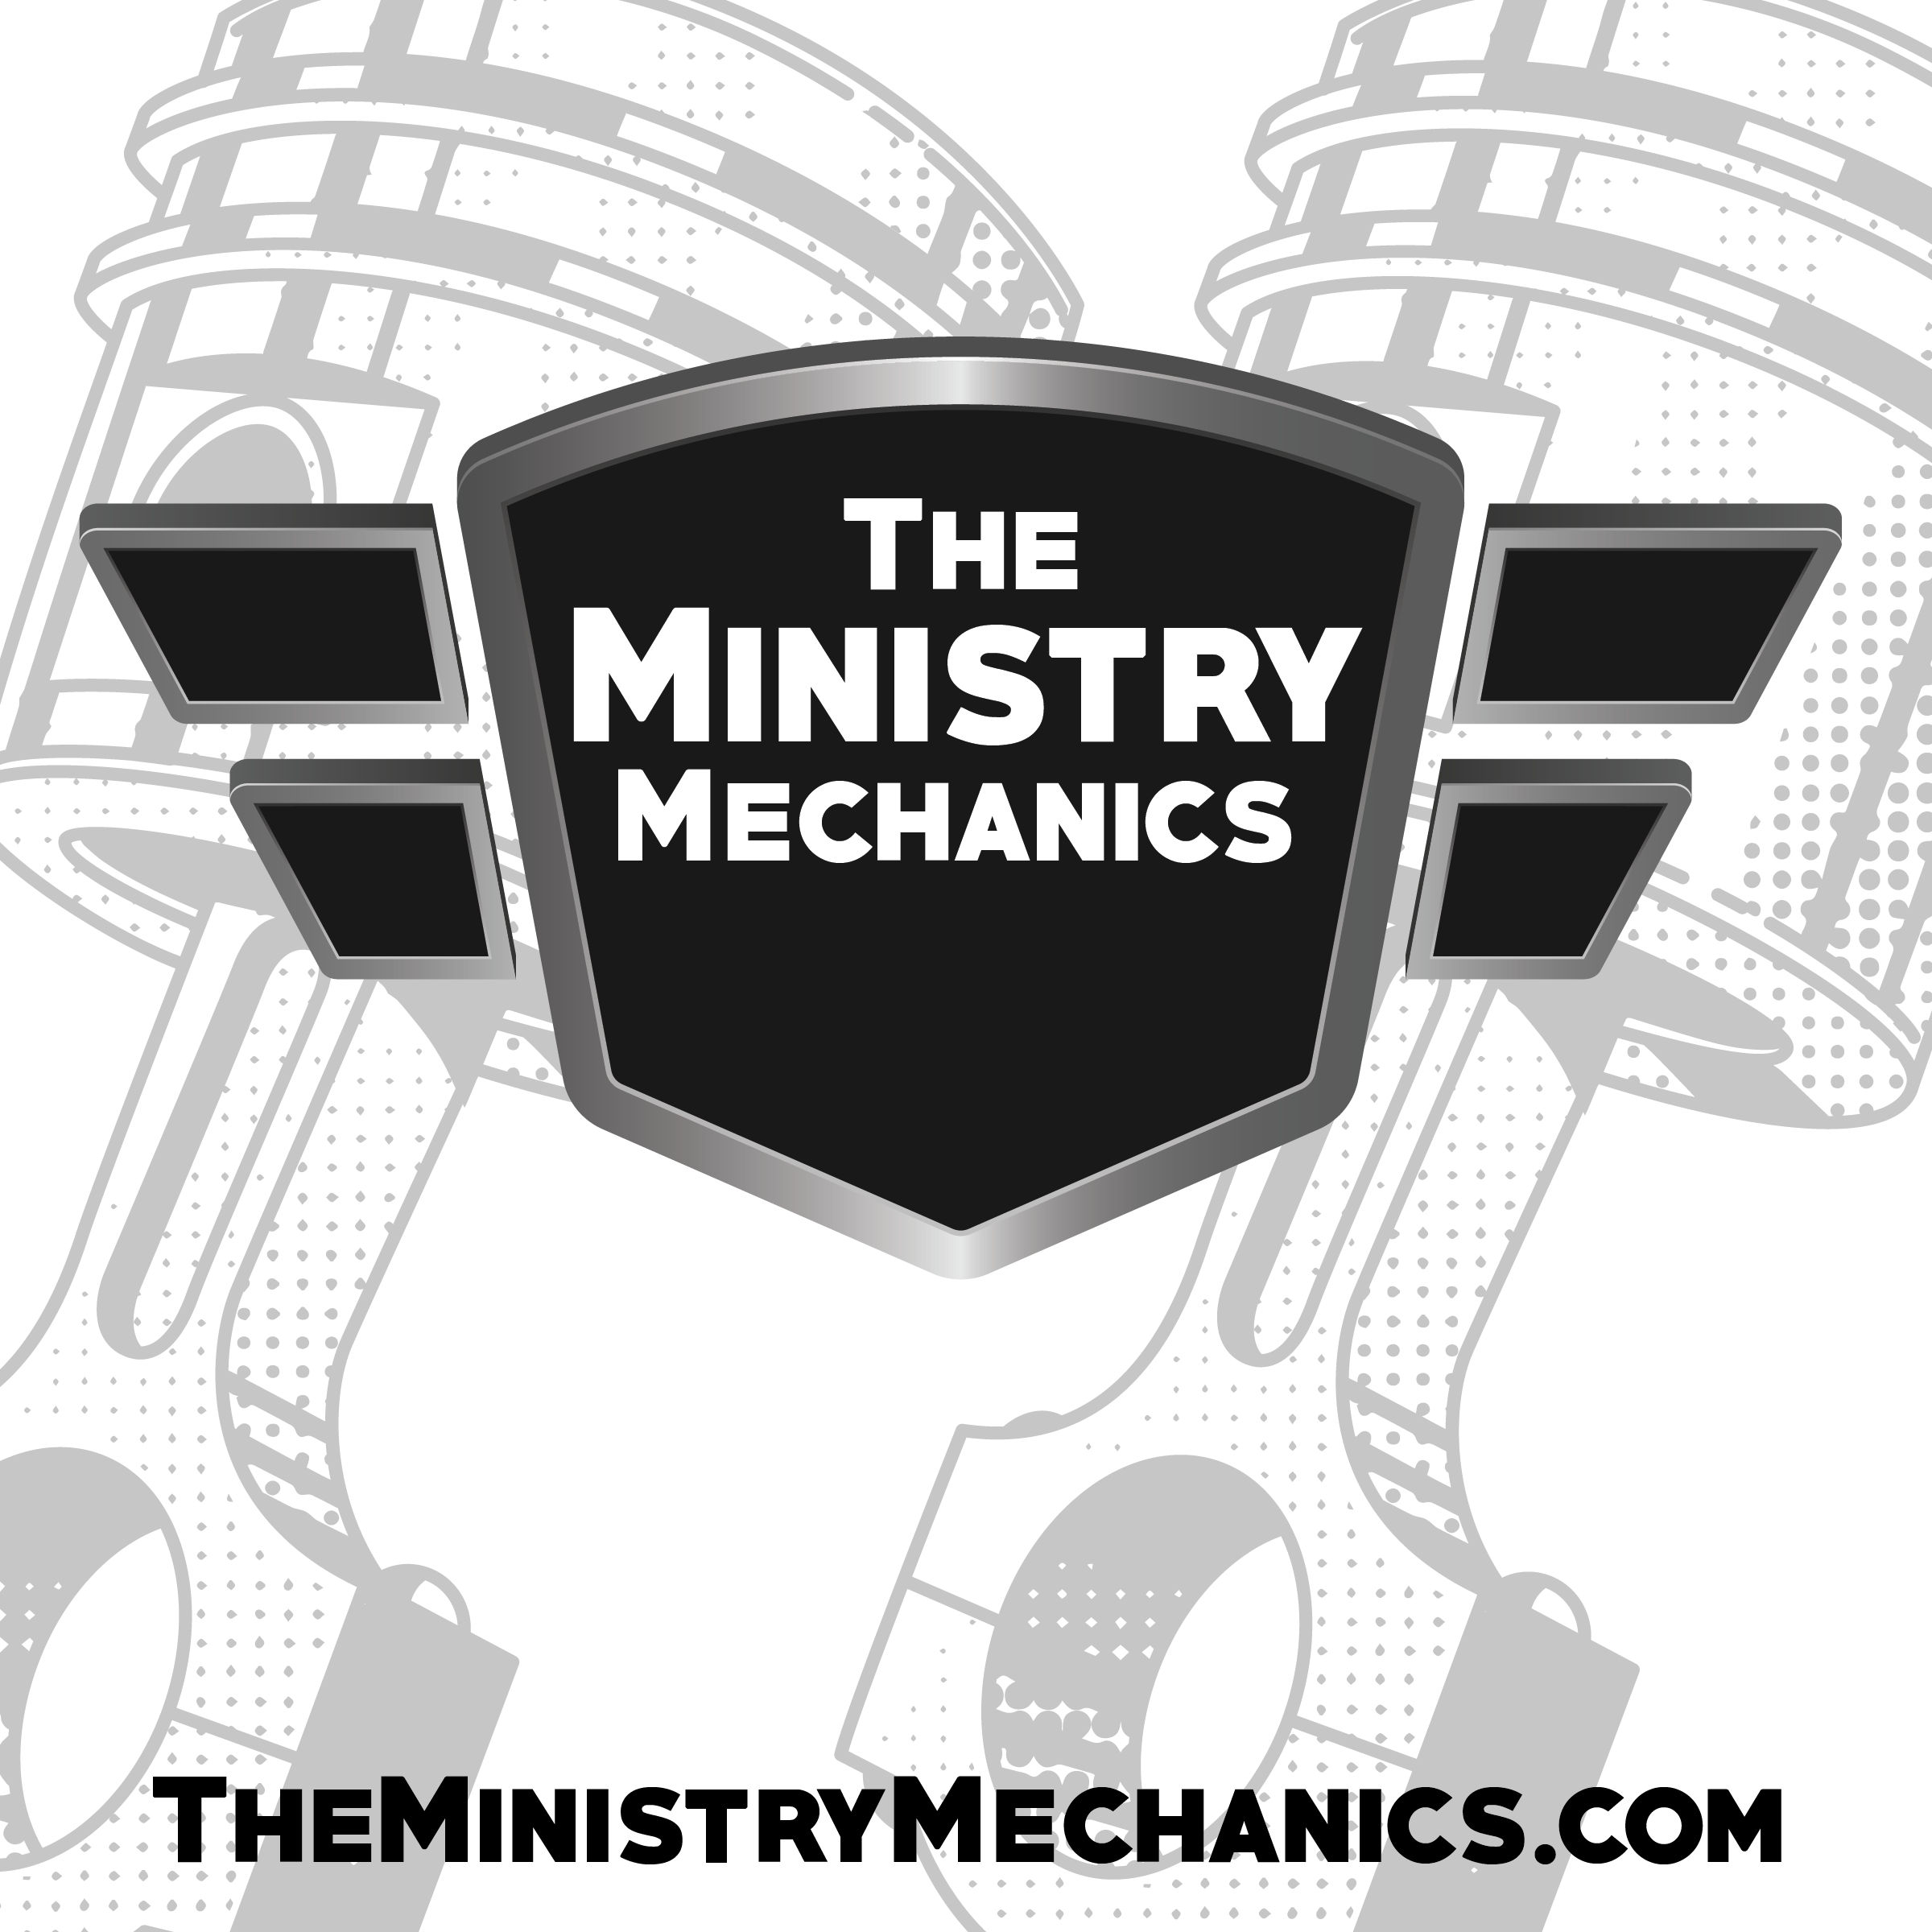 The Ministry Mechanics